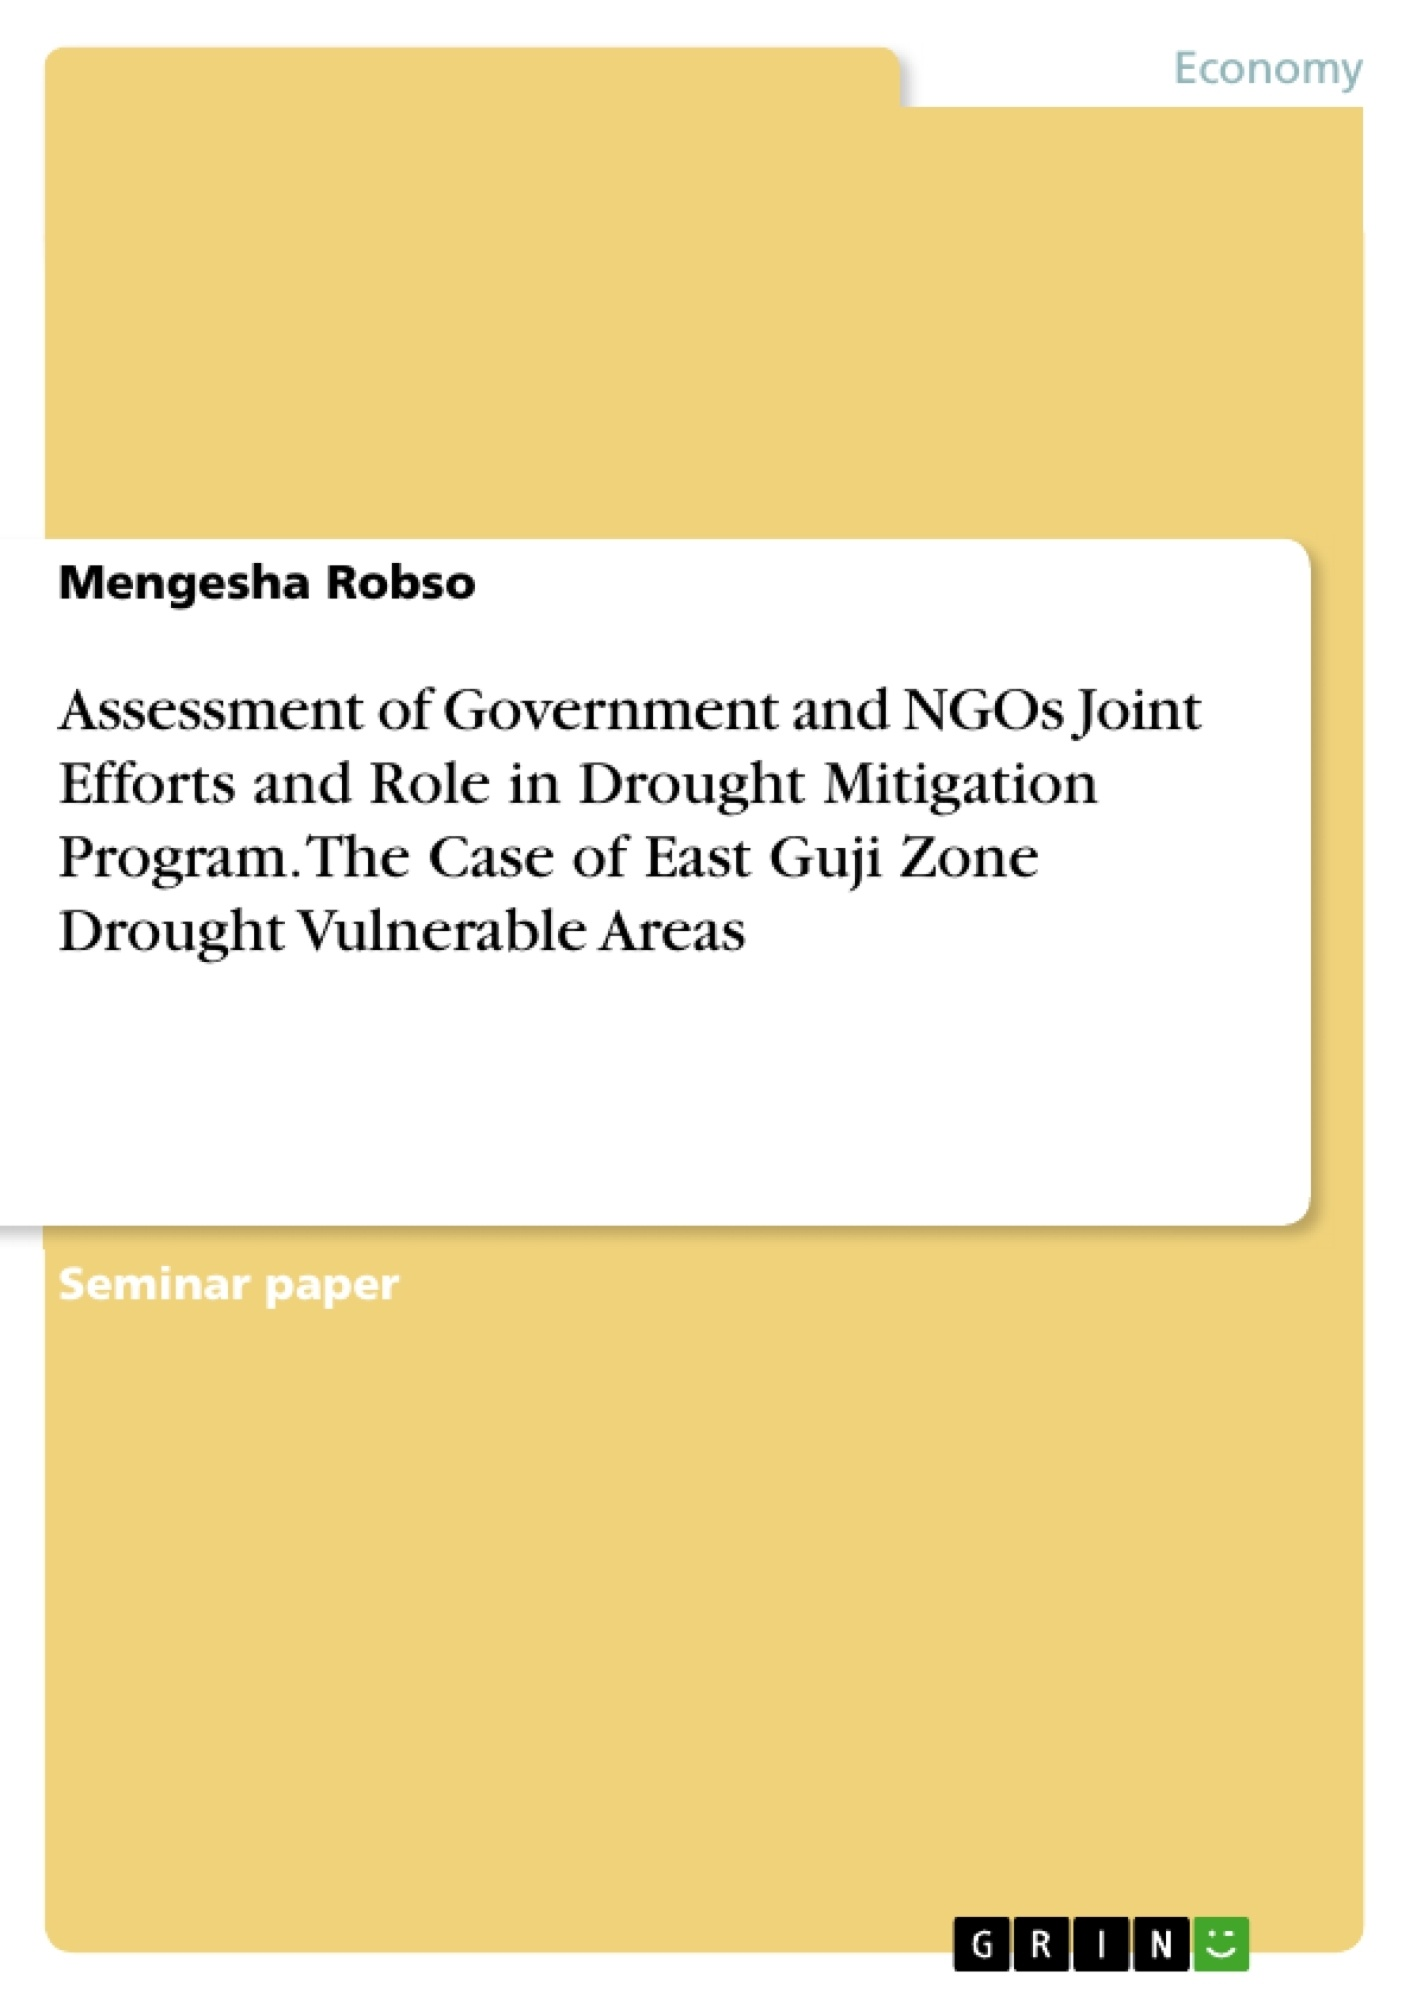 Title: Assessment of Government and NGOs Joint Efforts and Role in Drought Mitigation Program. The Case of East Guji Zone Drought Vulnerable Areas